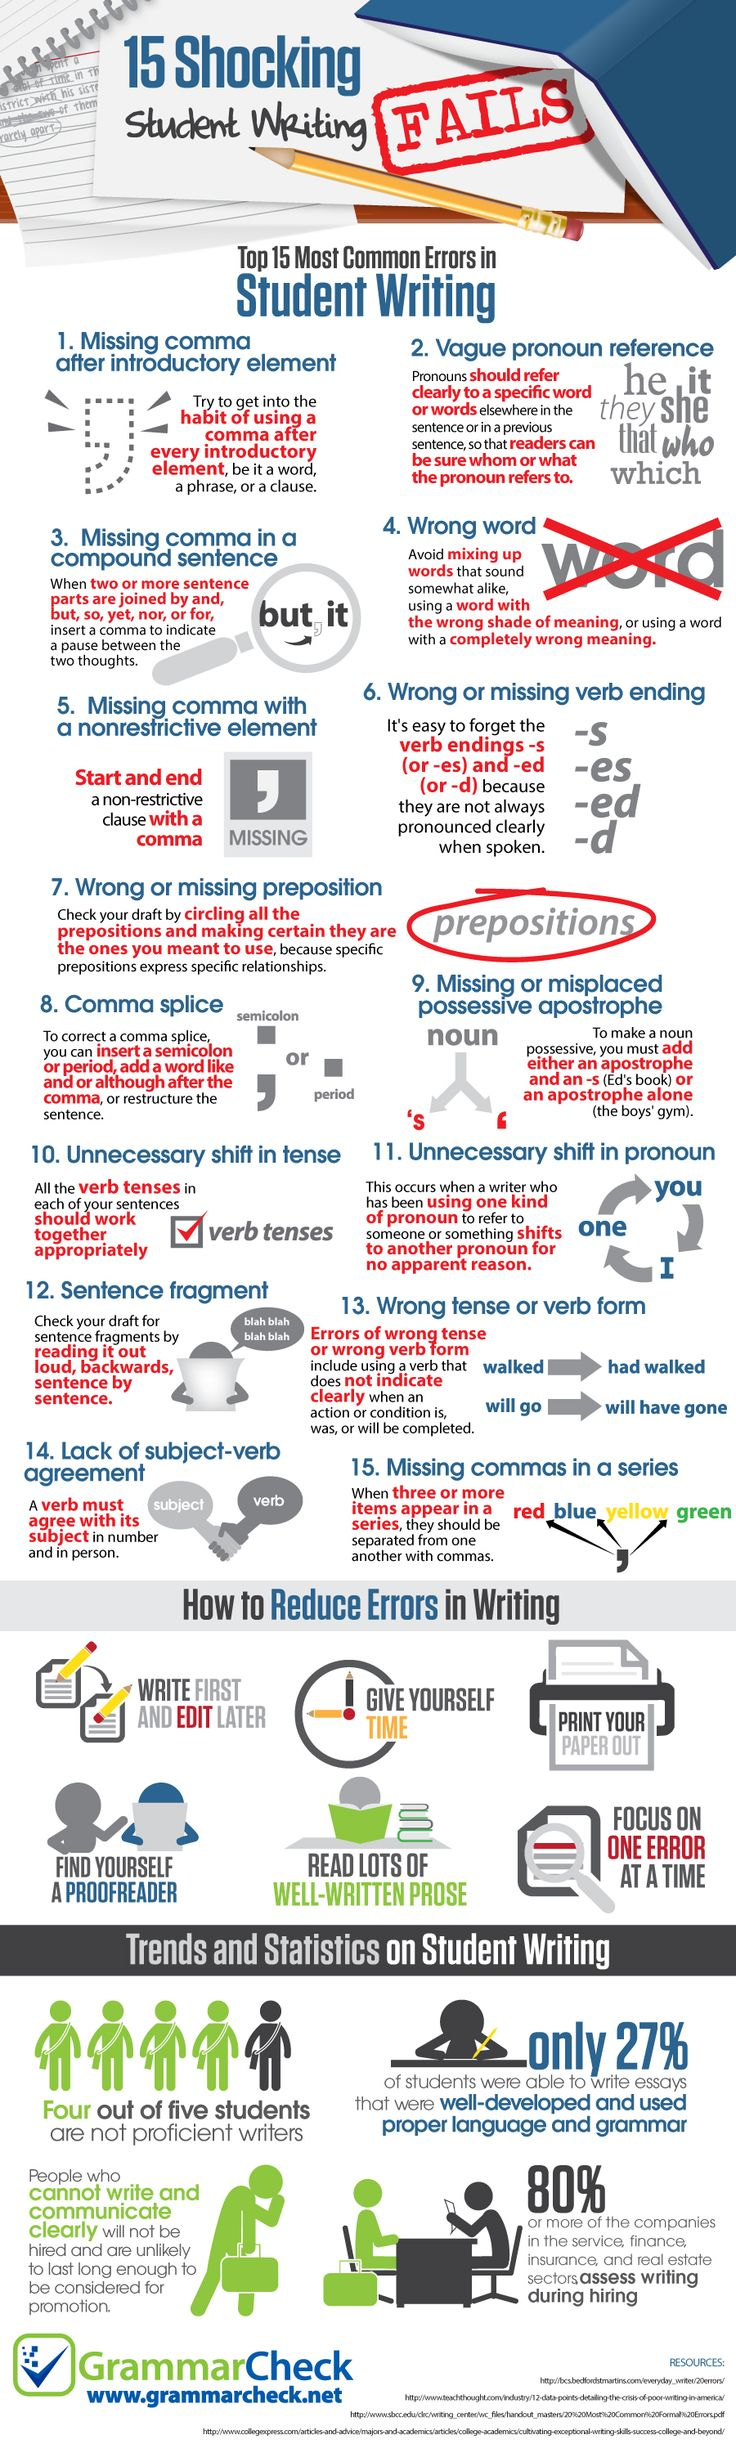 best ideas about english writing skills english 15 shocking student writing fails infographic